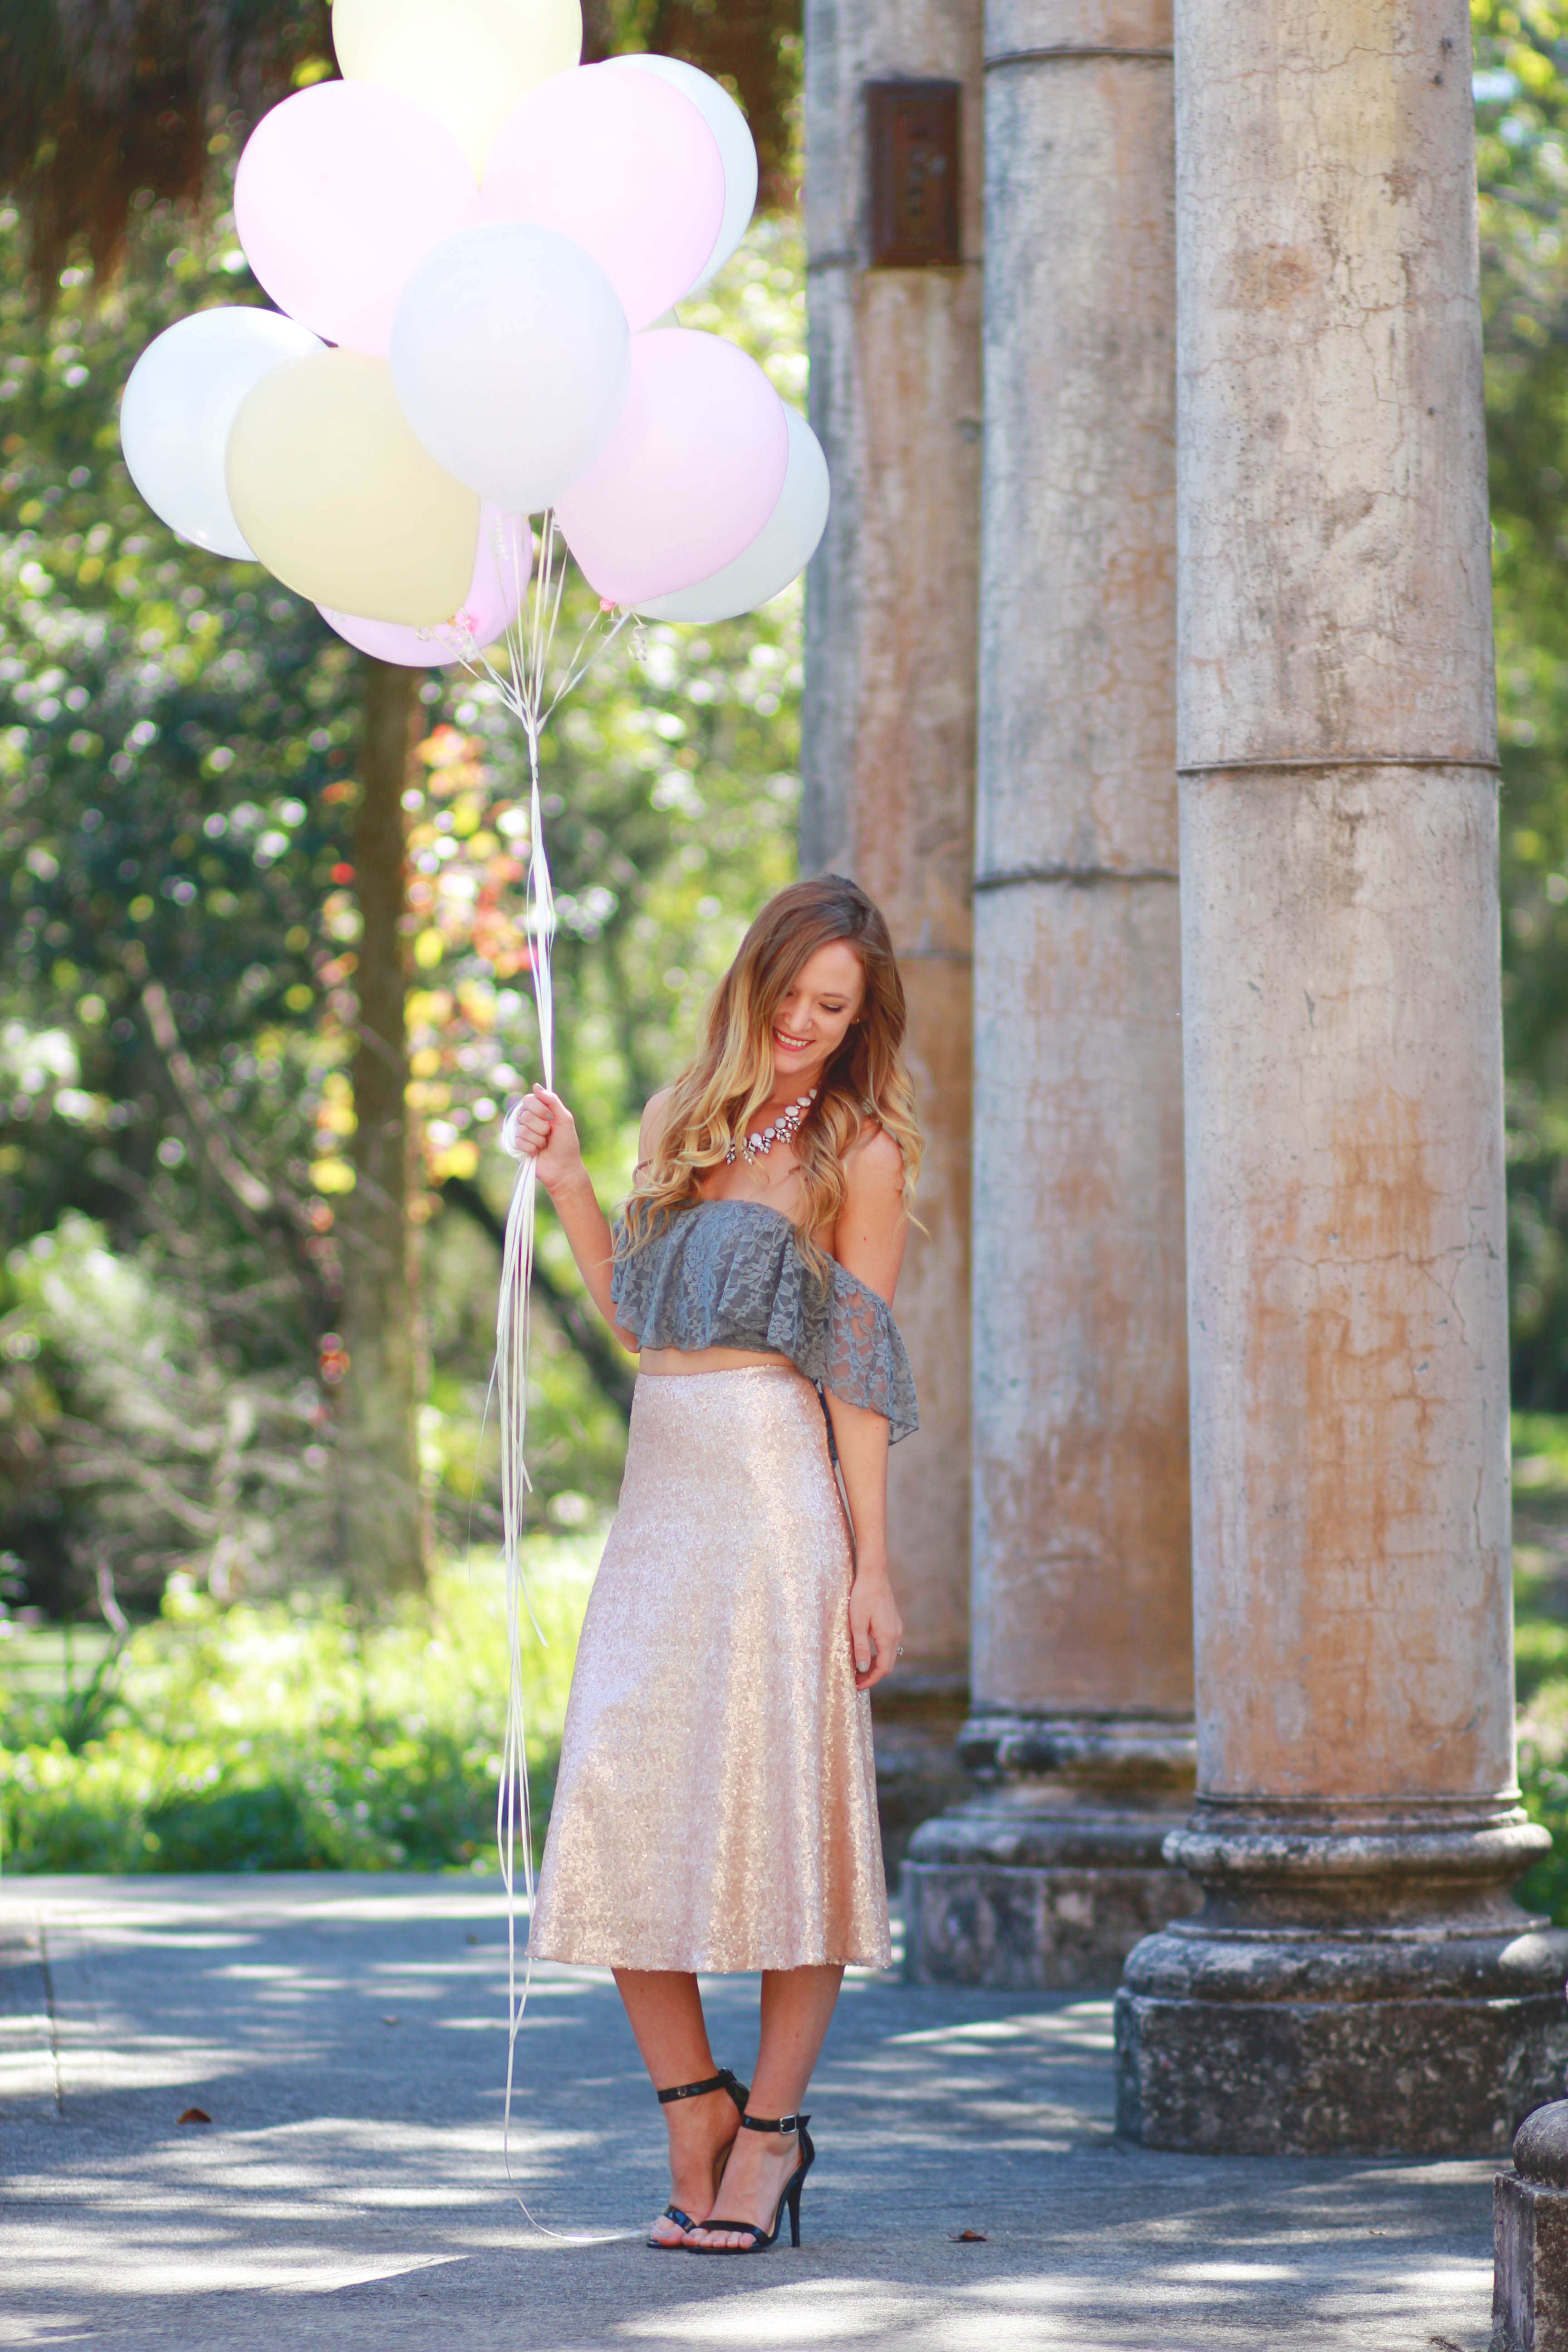 orlando/ florida fashion blogger styles saule boutique sequin midi skirt, hollister lace crop top and shamelessly sparkly necklace for a birthday outfit